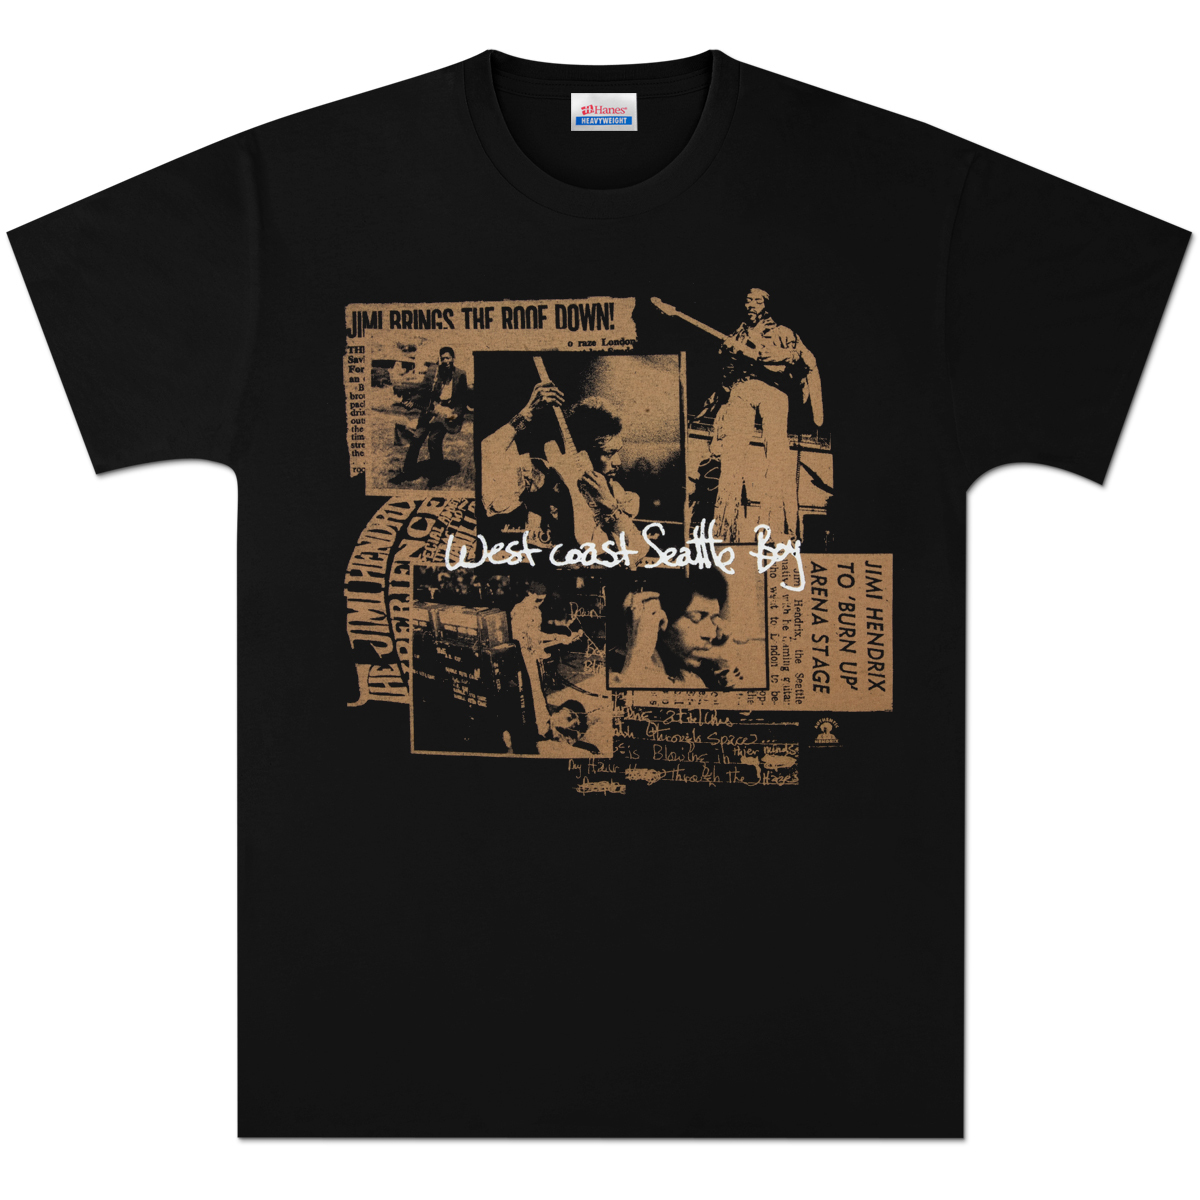 Jimi Hendrix Seattle Boy T-Shirt (Gold)